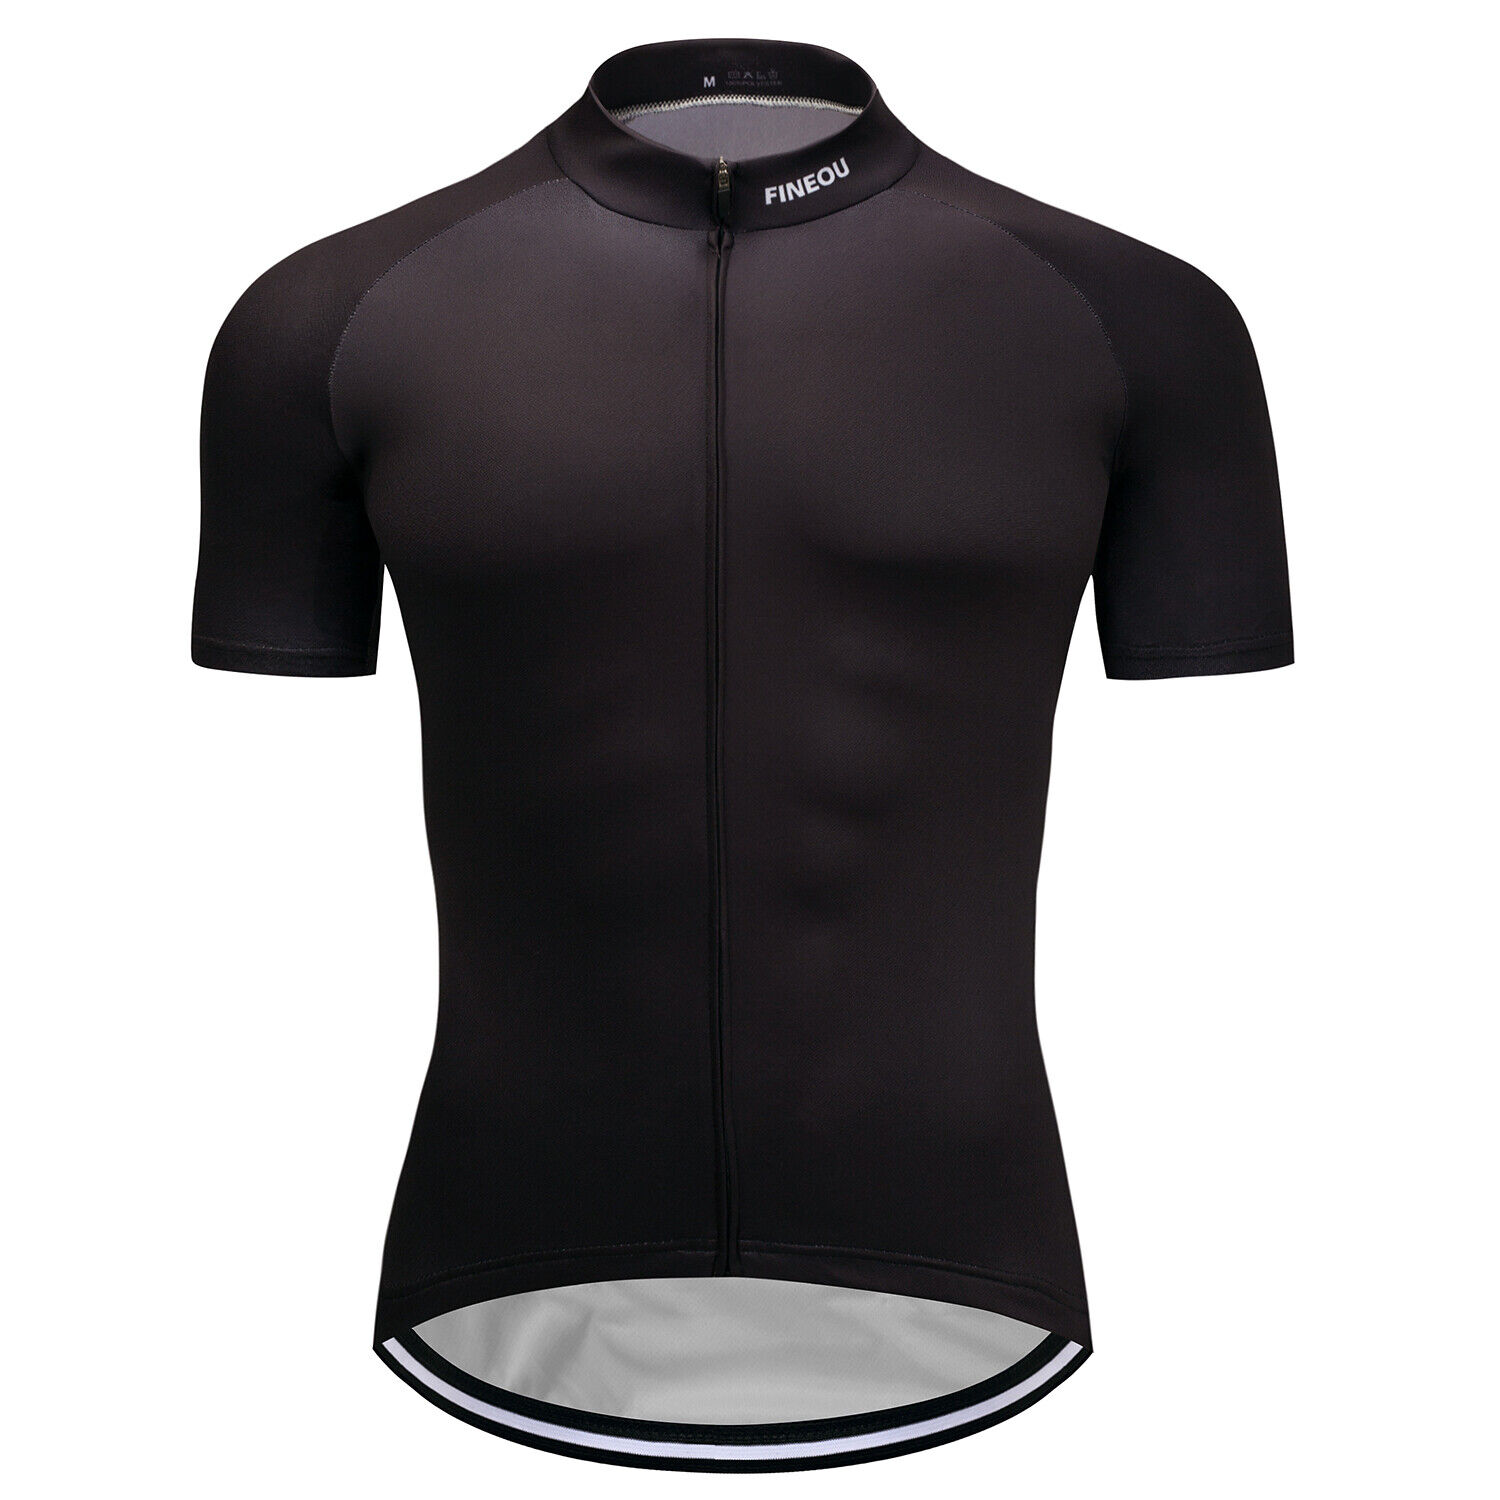 Men's Black Cycling Jersey Summer Short Sleeve Breathable Qu